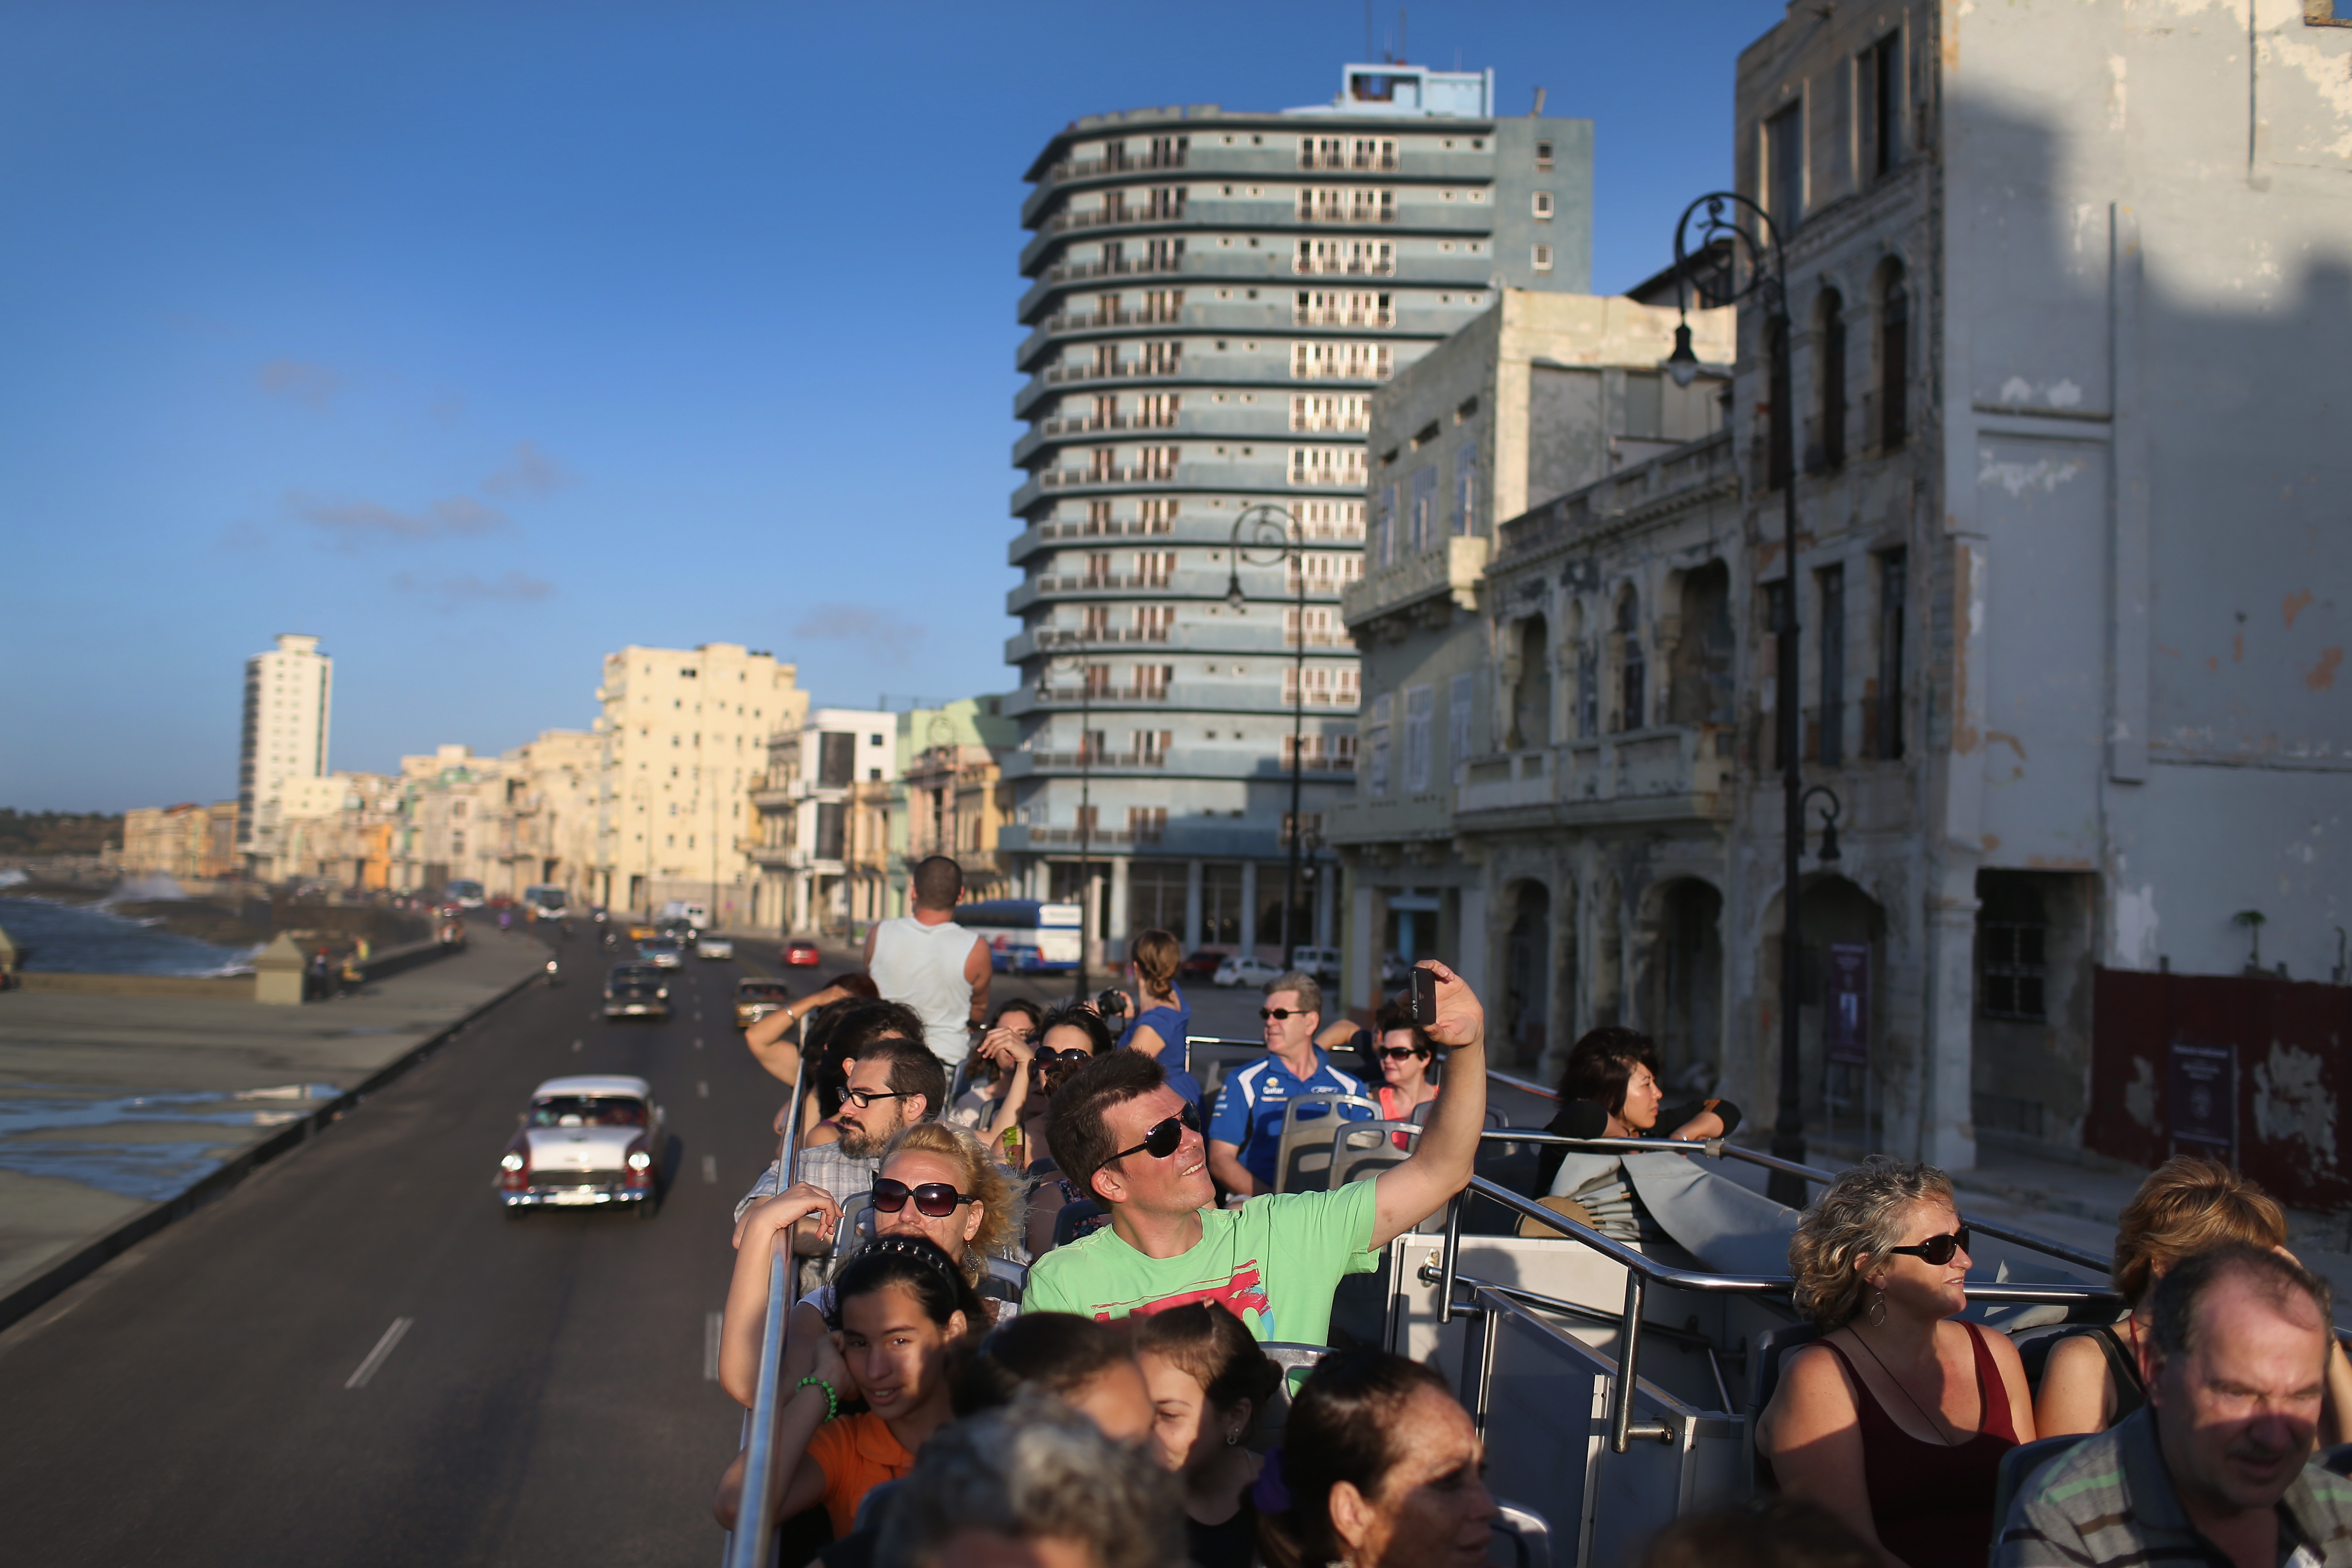 Tourists take in the sites from a double decker tour bus of Havana a day after the second round of diplomatic talks between the United States and Cuban officials took place in Washington, DC, on February 28, 2015.